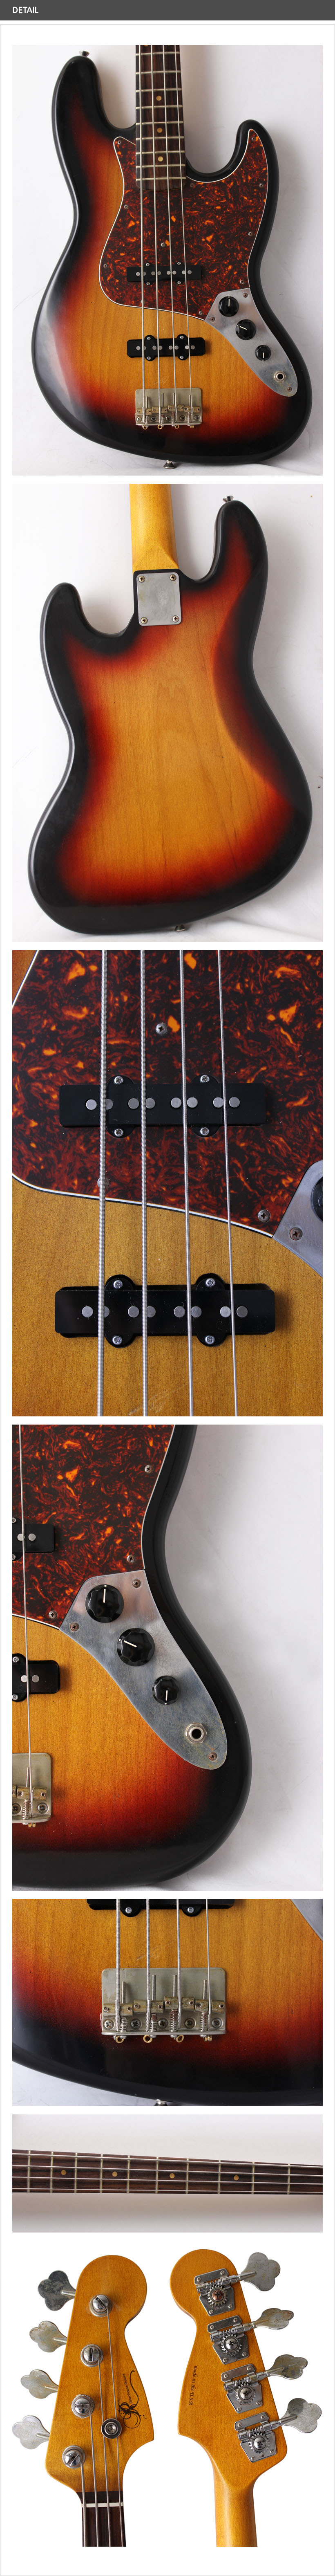 1960 J-Bass Light Relic 3TS 특징 및 장점